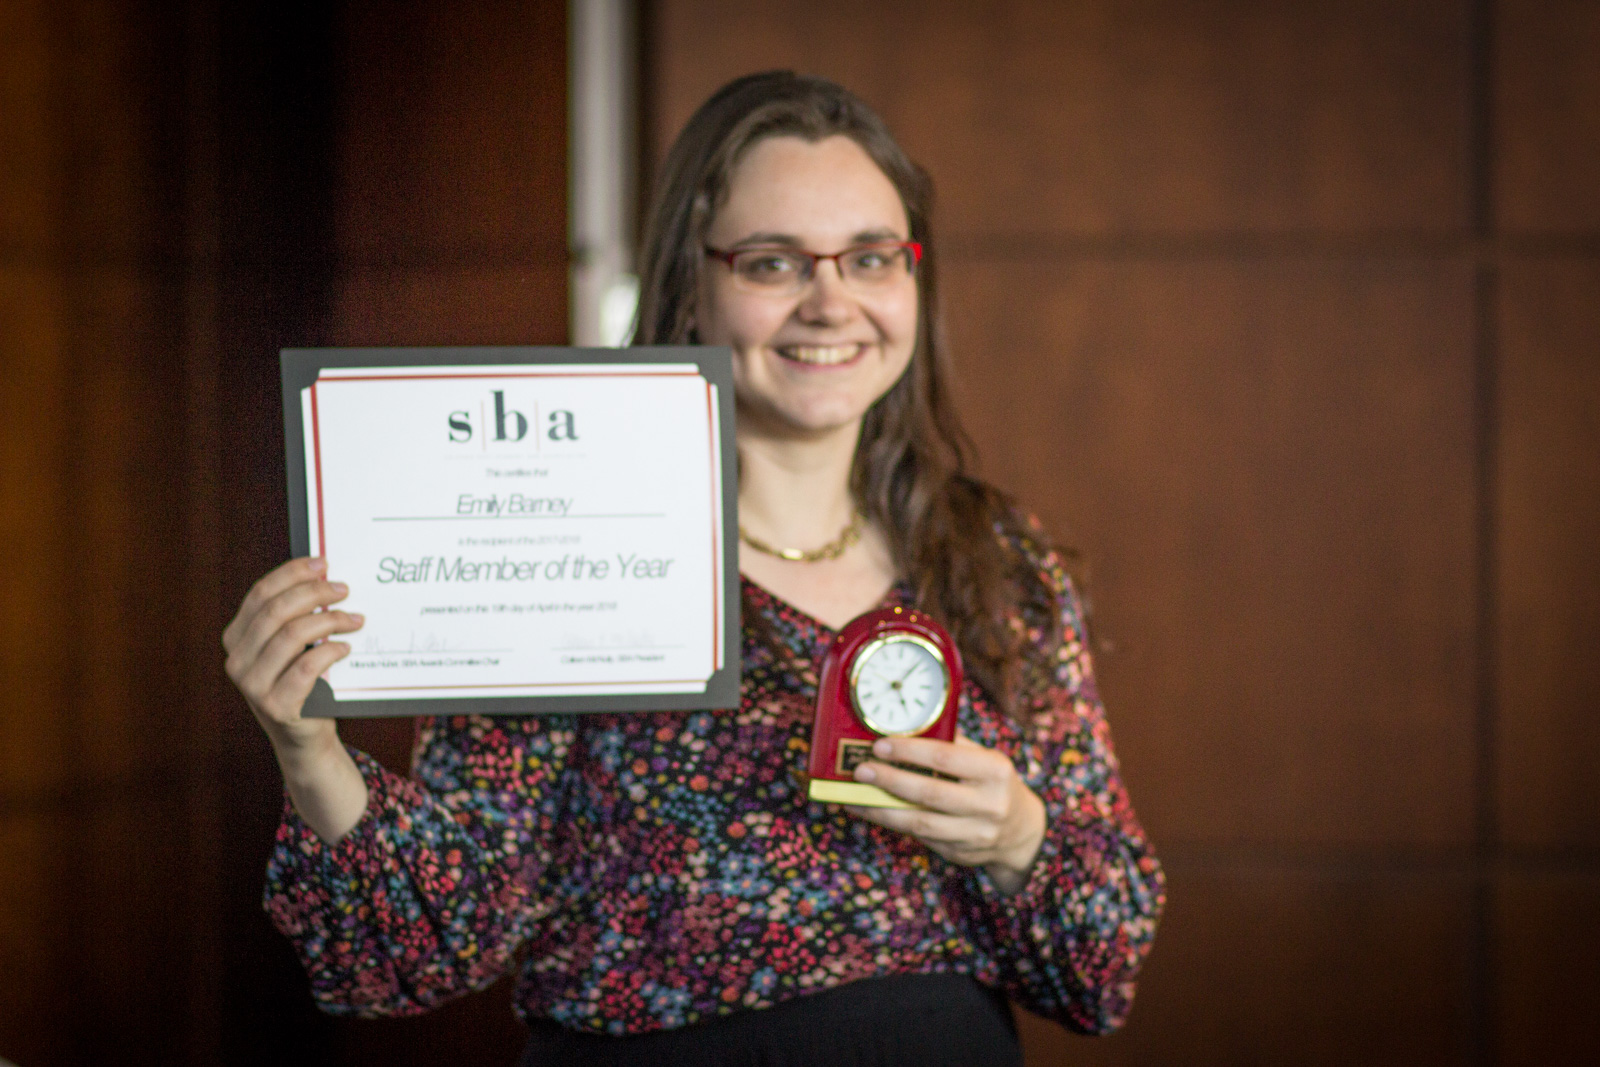 Emily Barney, 2017-2018 Staff Member of the Year